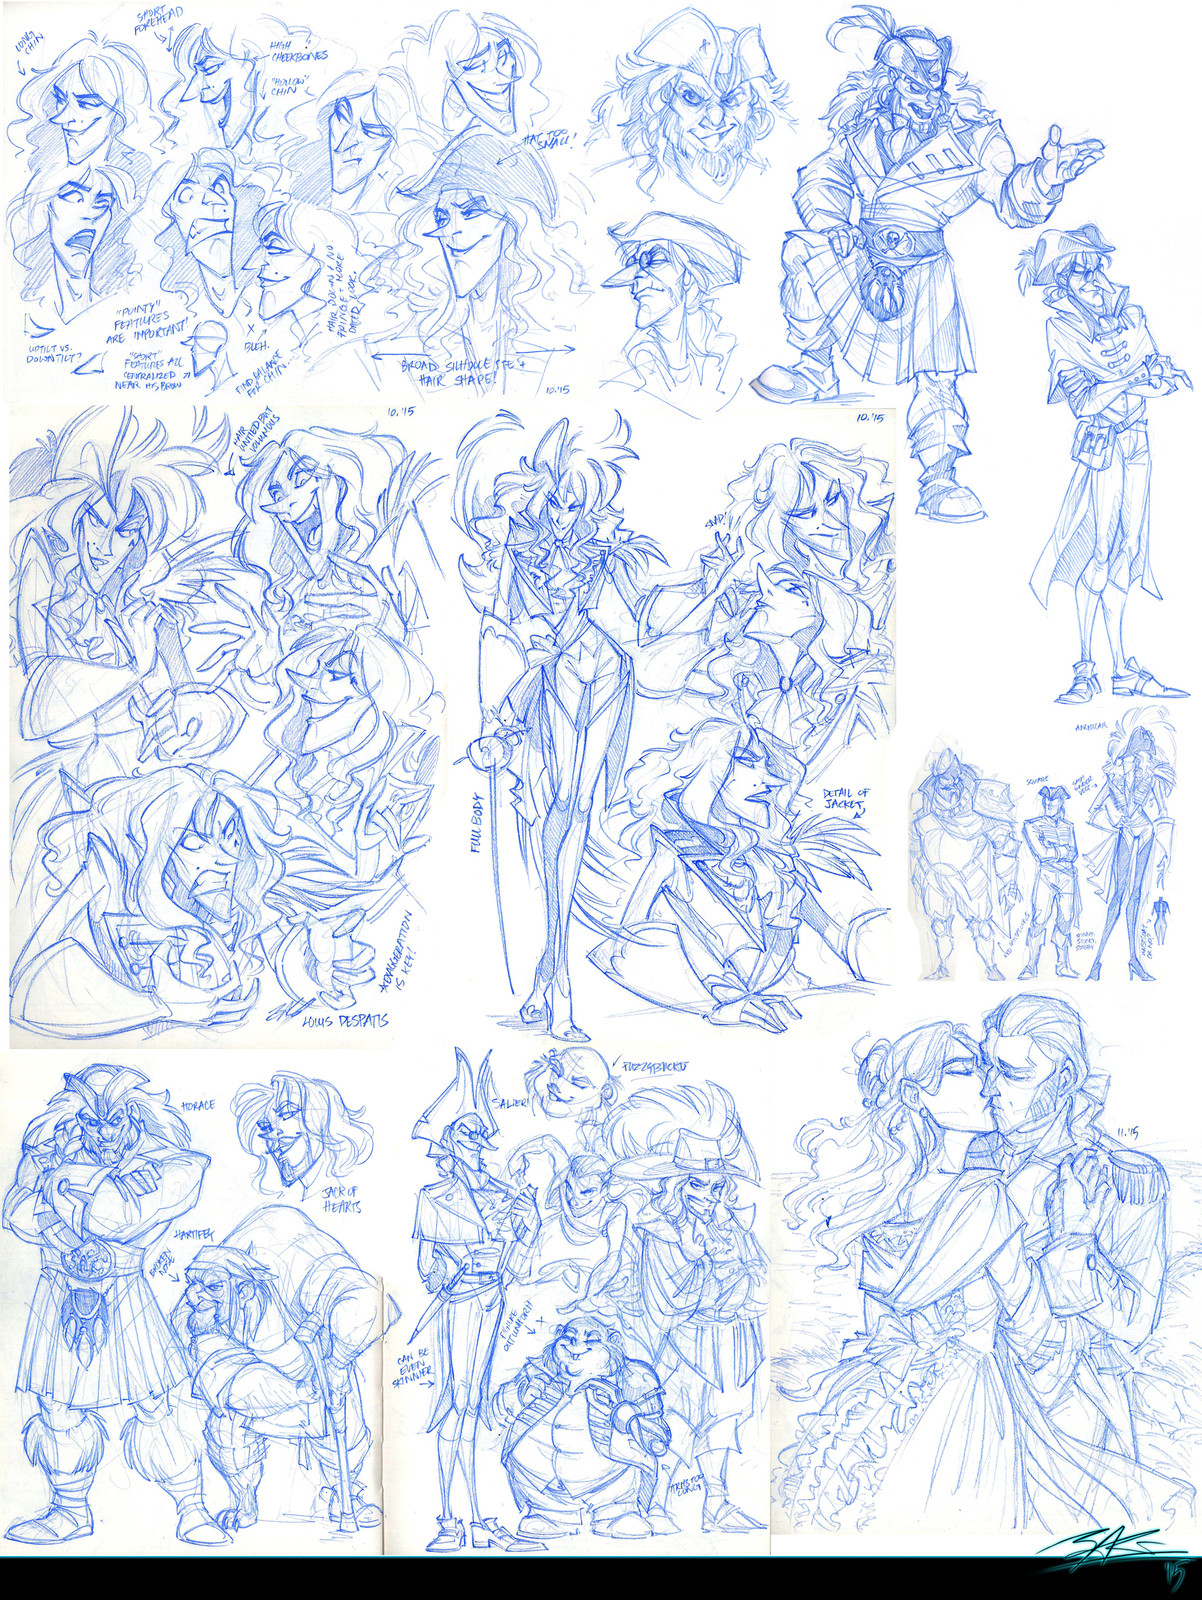 Sketchdump #3: Collection of explorations from sketchbook - (2015)